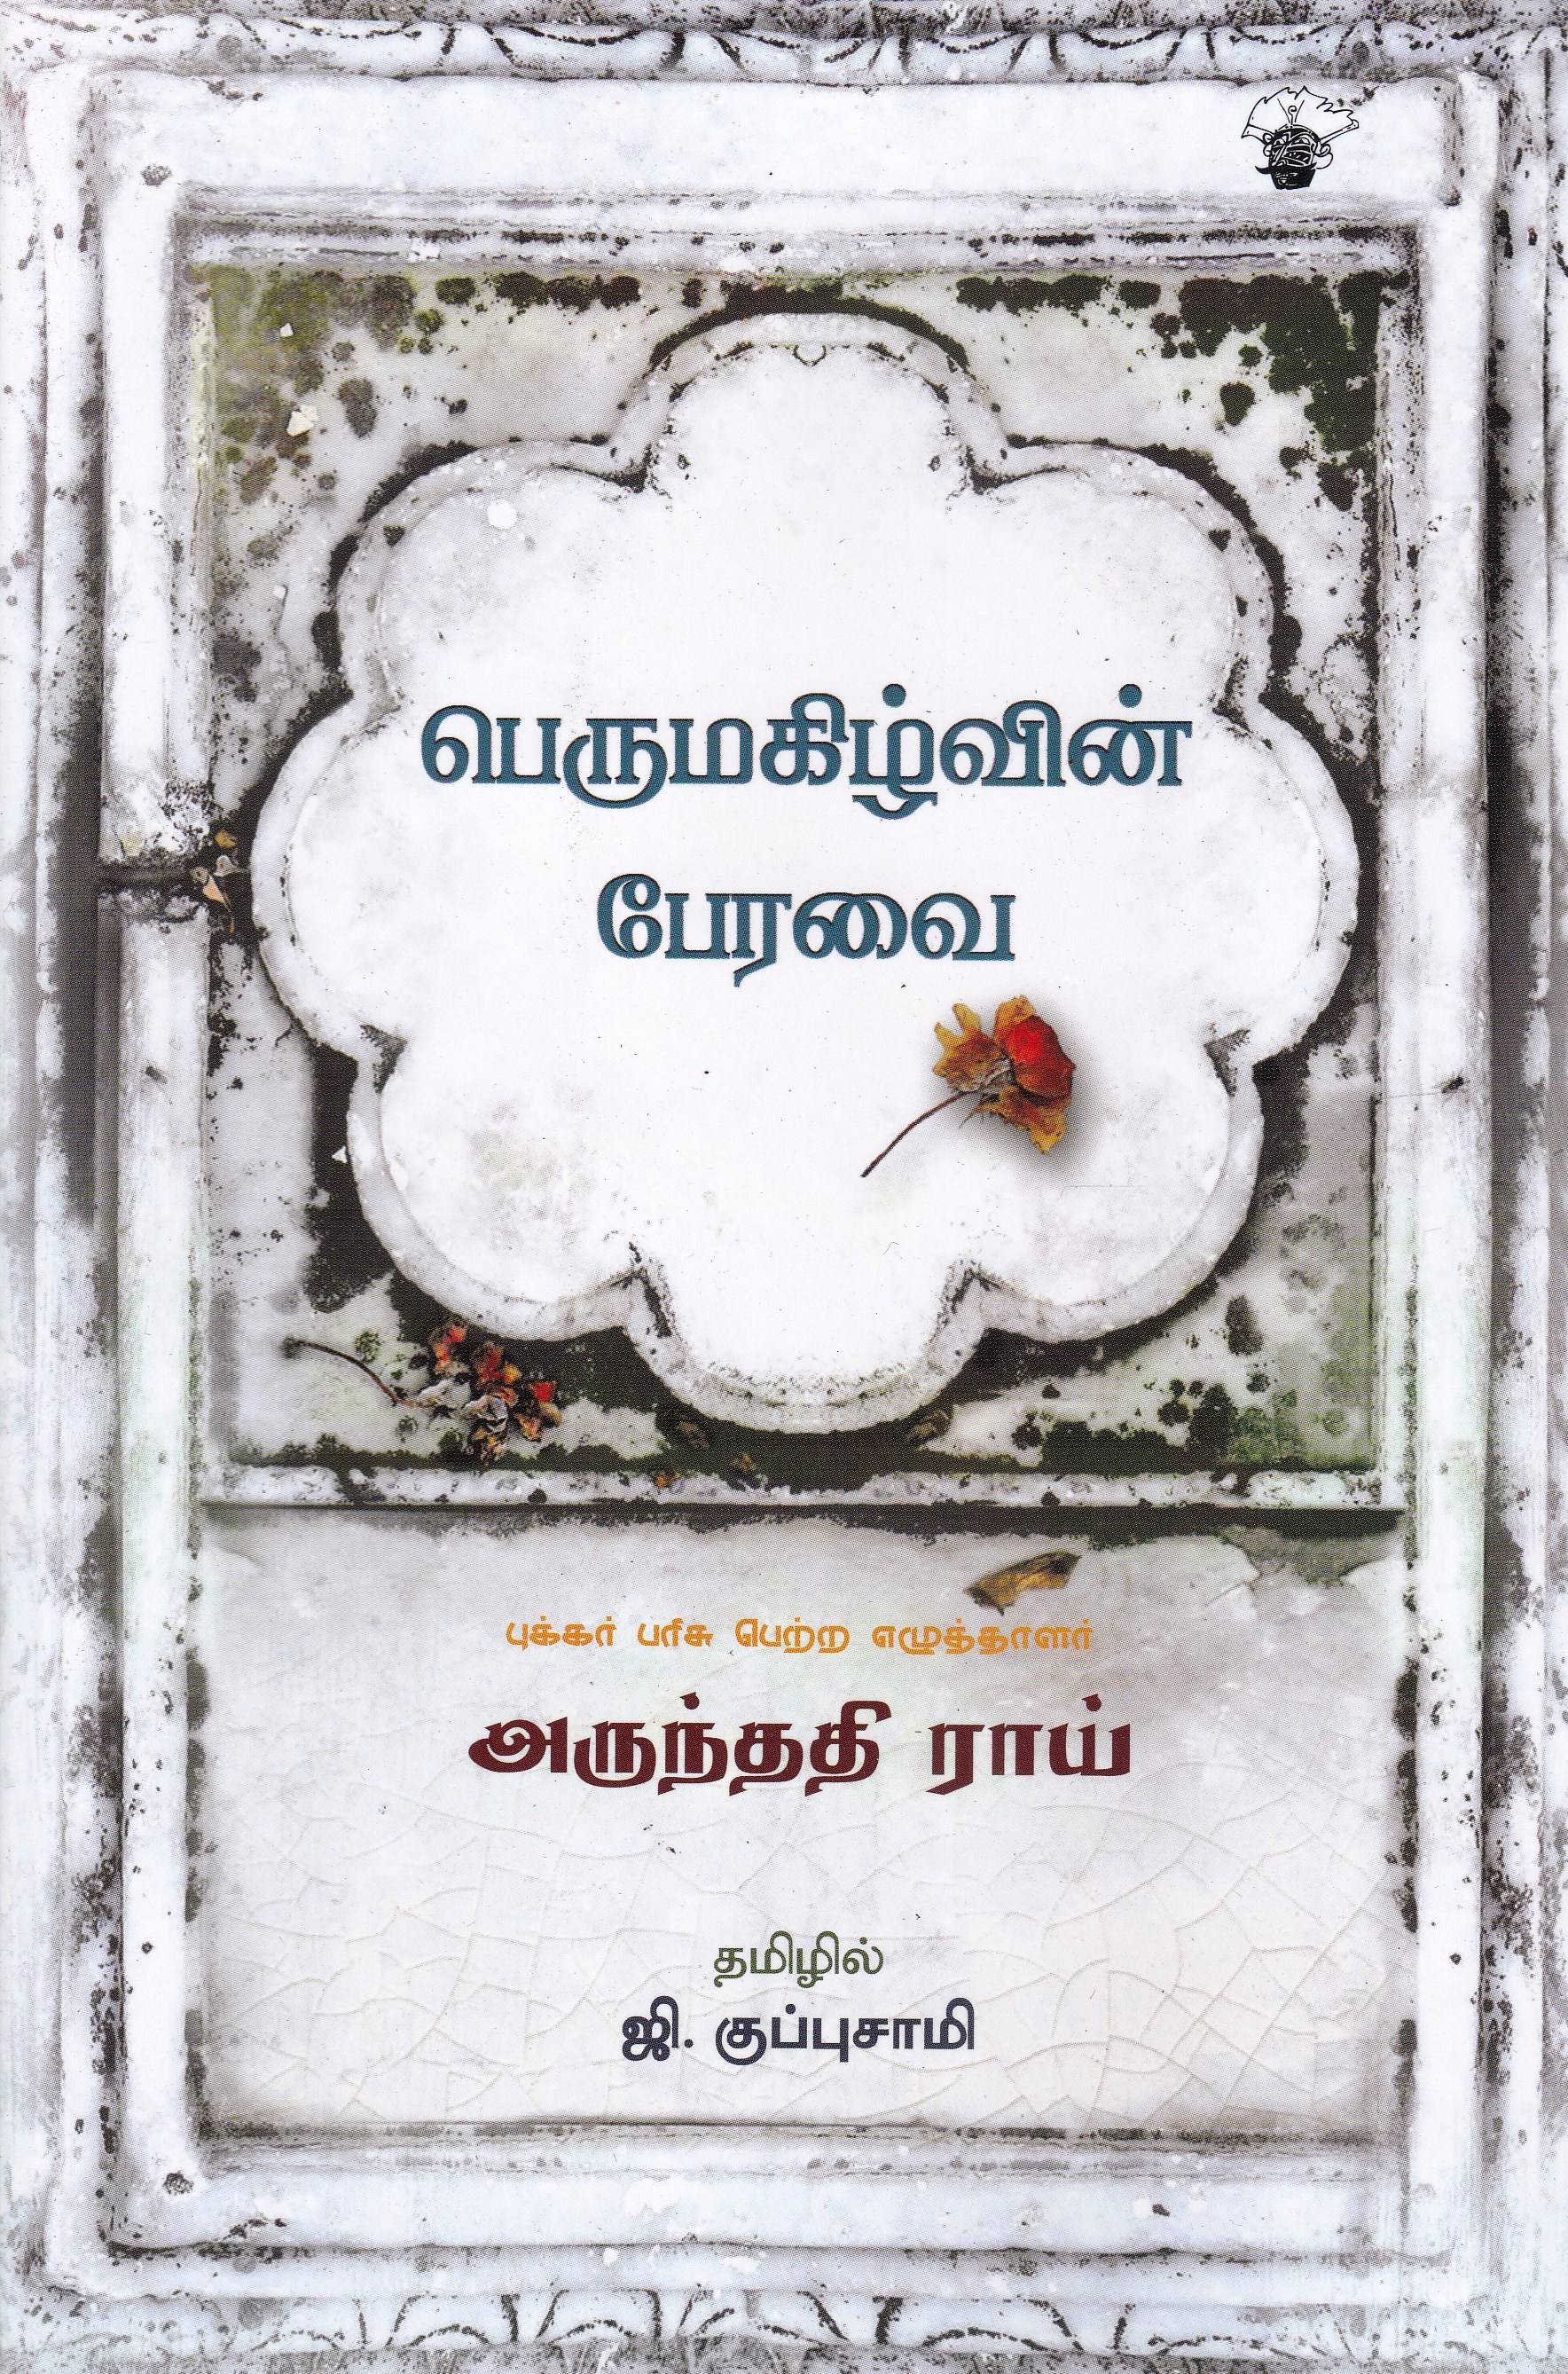 Arundhati Roy's Perumagizhvin Peravai (The Ministry of Utmost Happiness) novel Book Review By Theni Seerudayan. Book Day